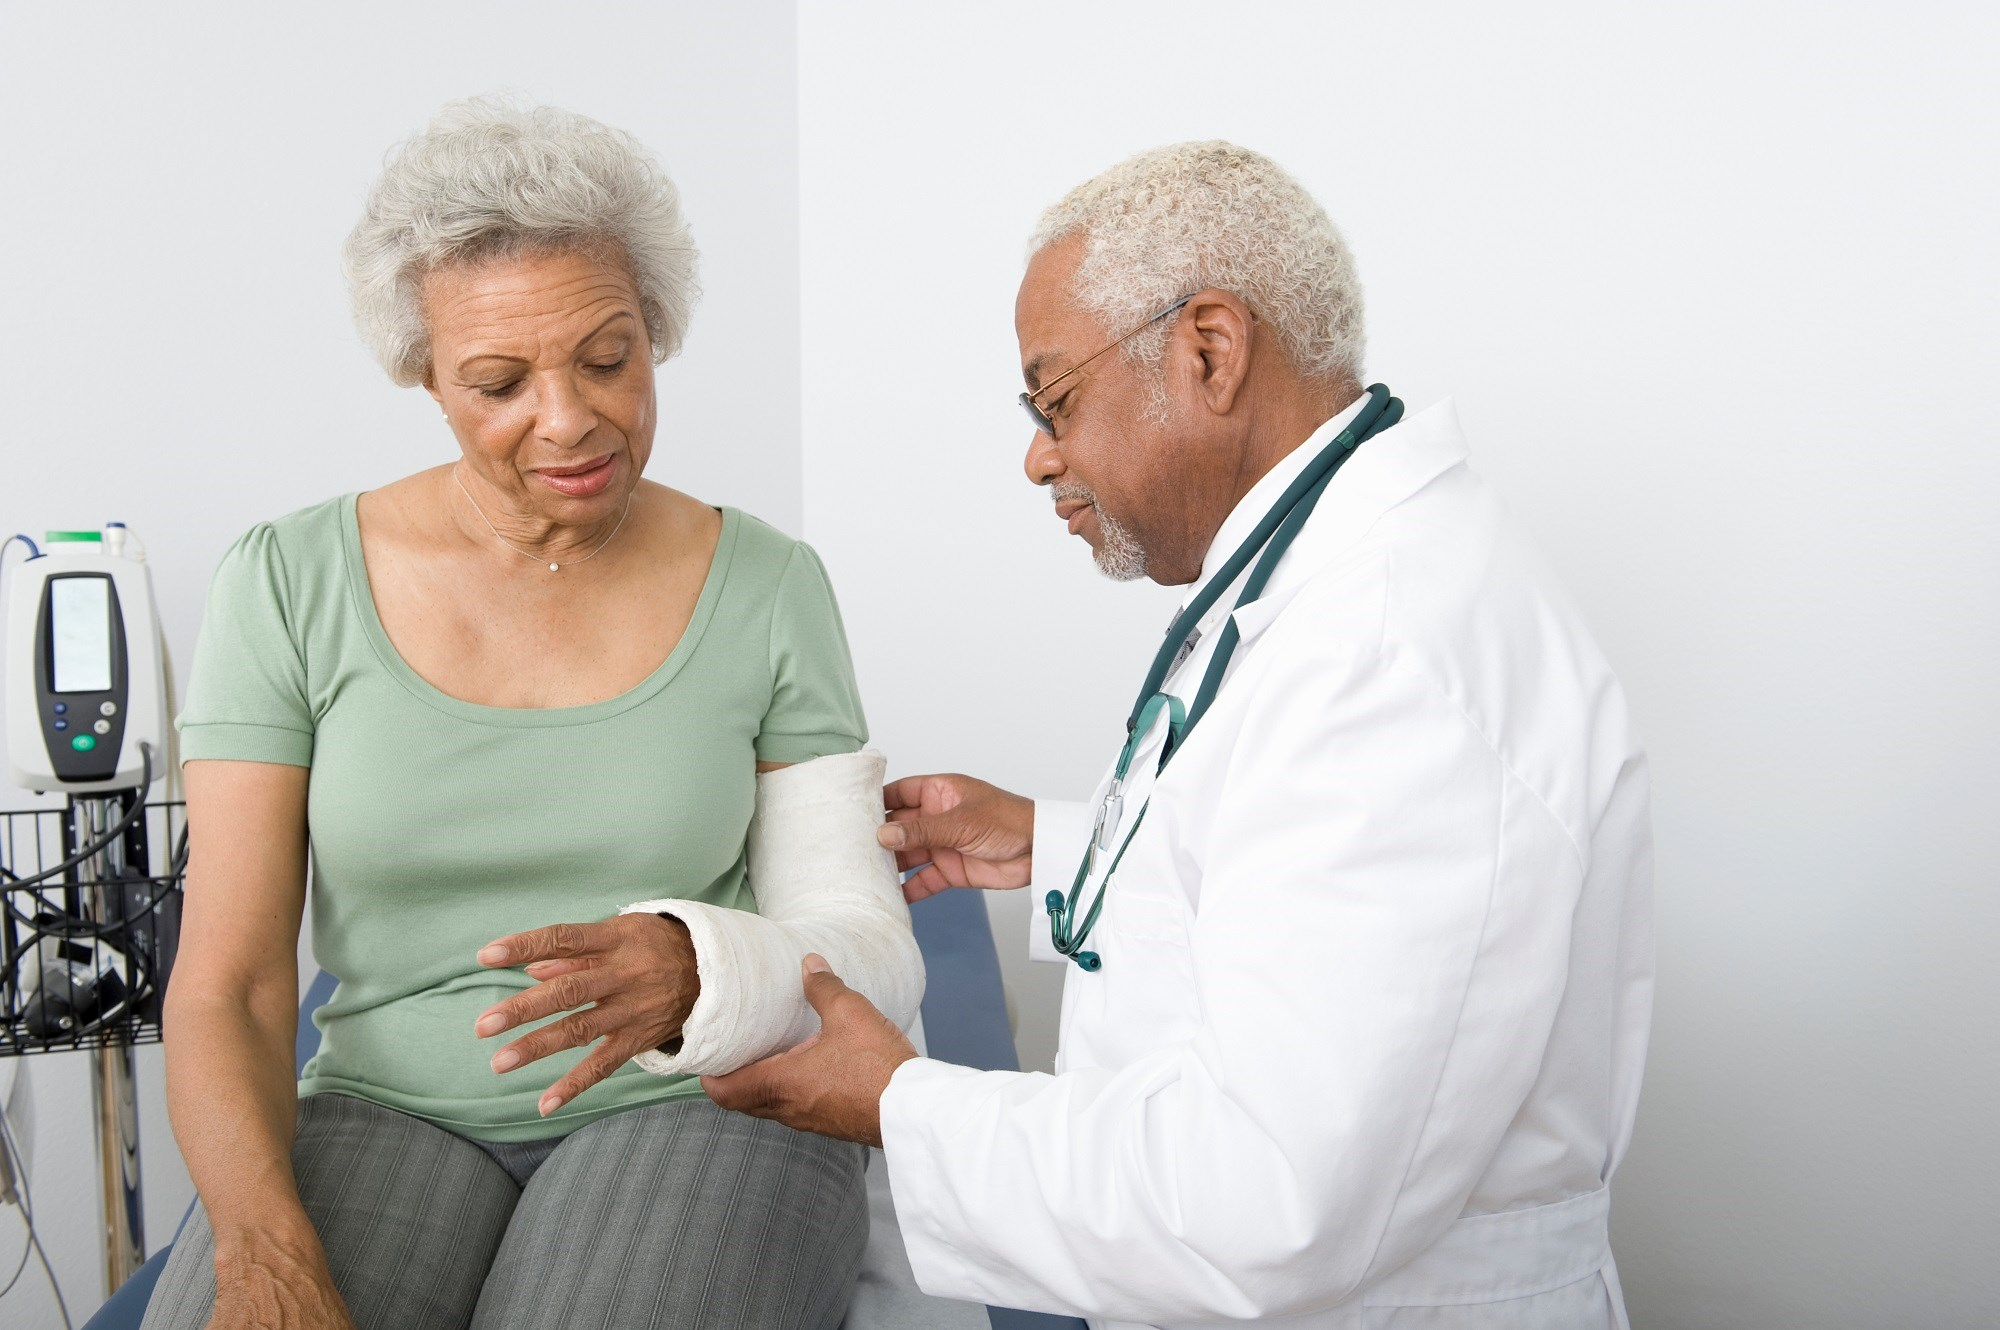 Bone Indices on CT Scan Predict Fracture Risk in Older Adults